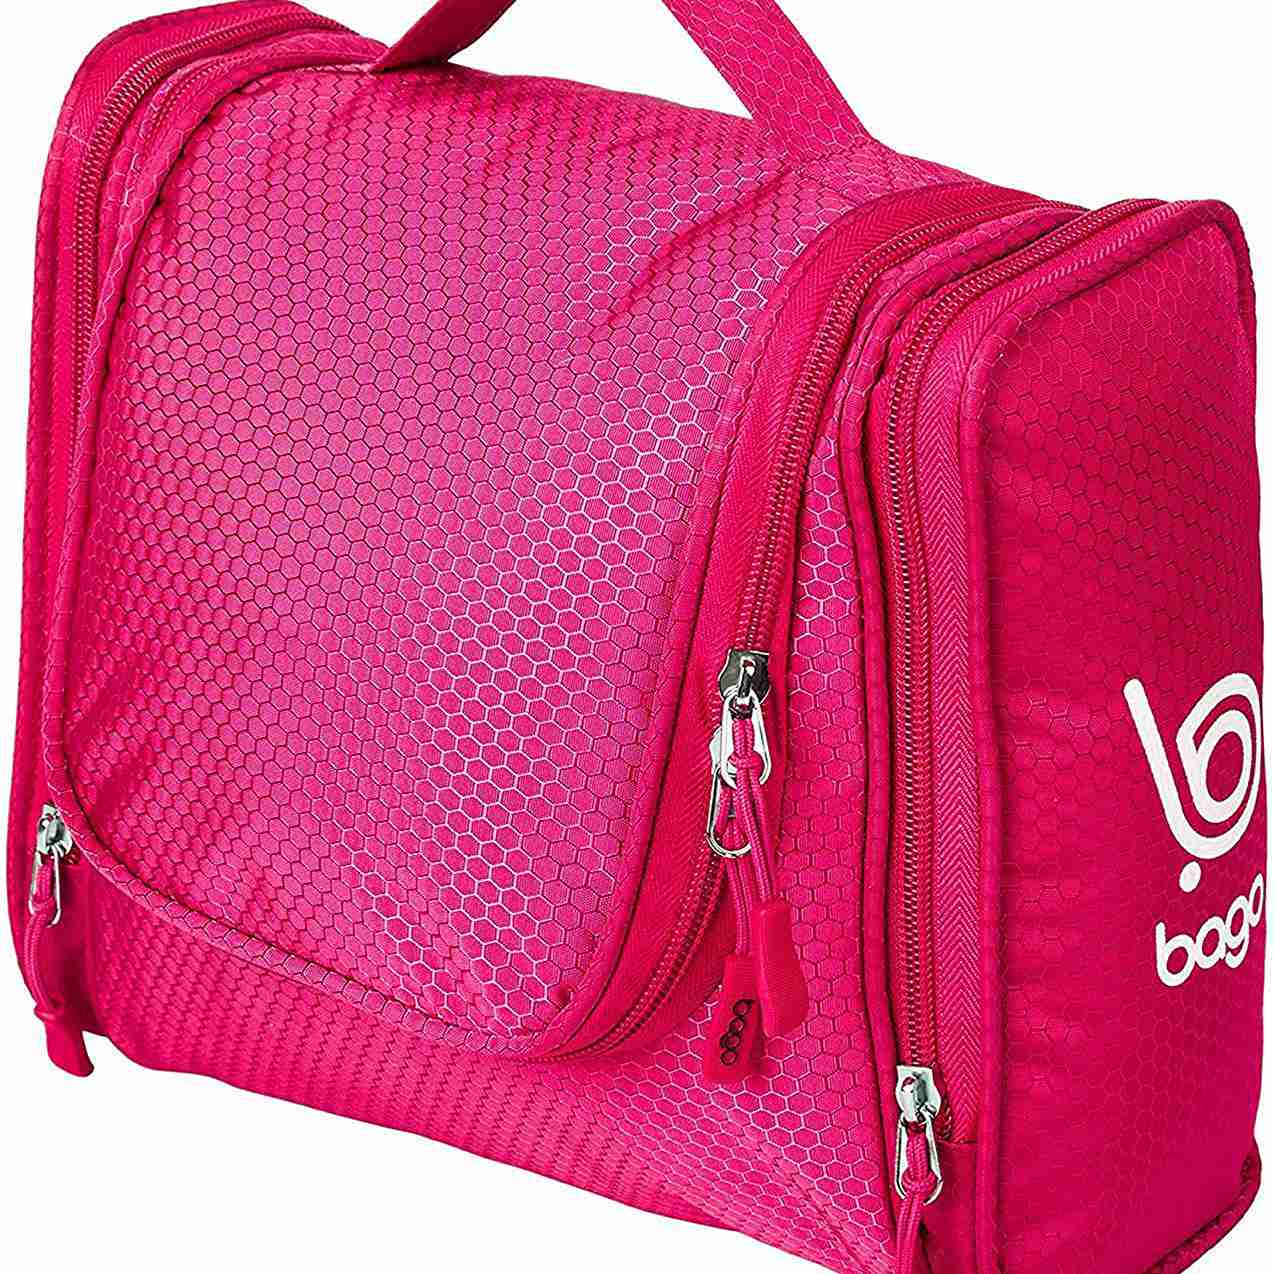 0f46d700780b Bago Hanging Toiletry Bag For Men & Women - Toiletries & Shave Travel  Organizer